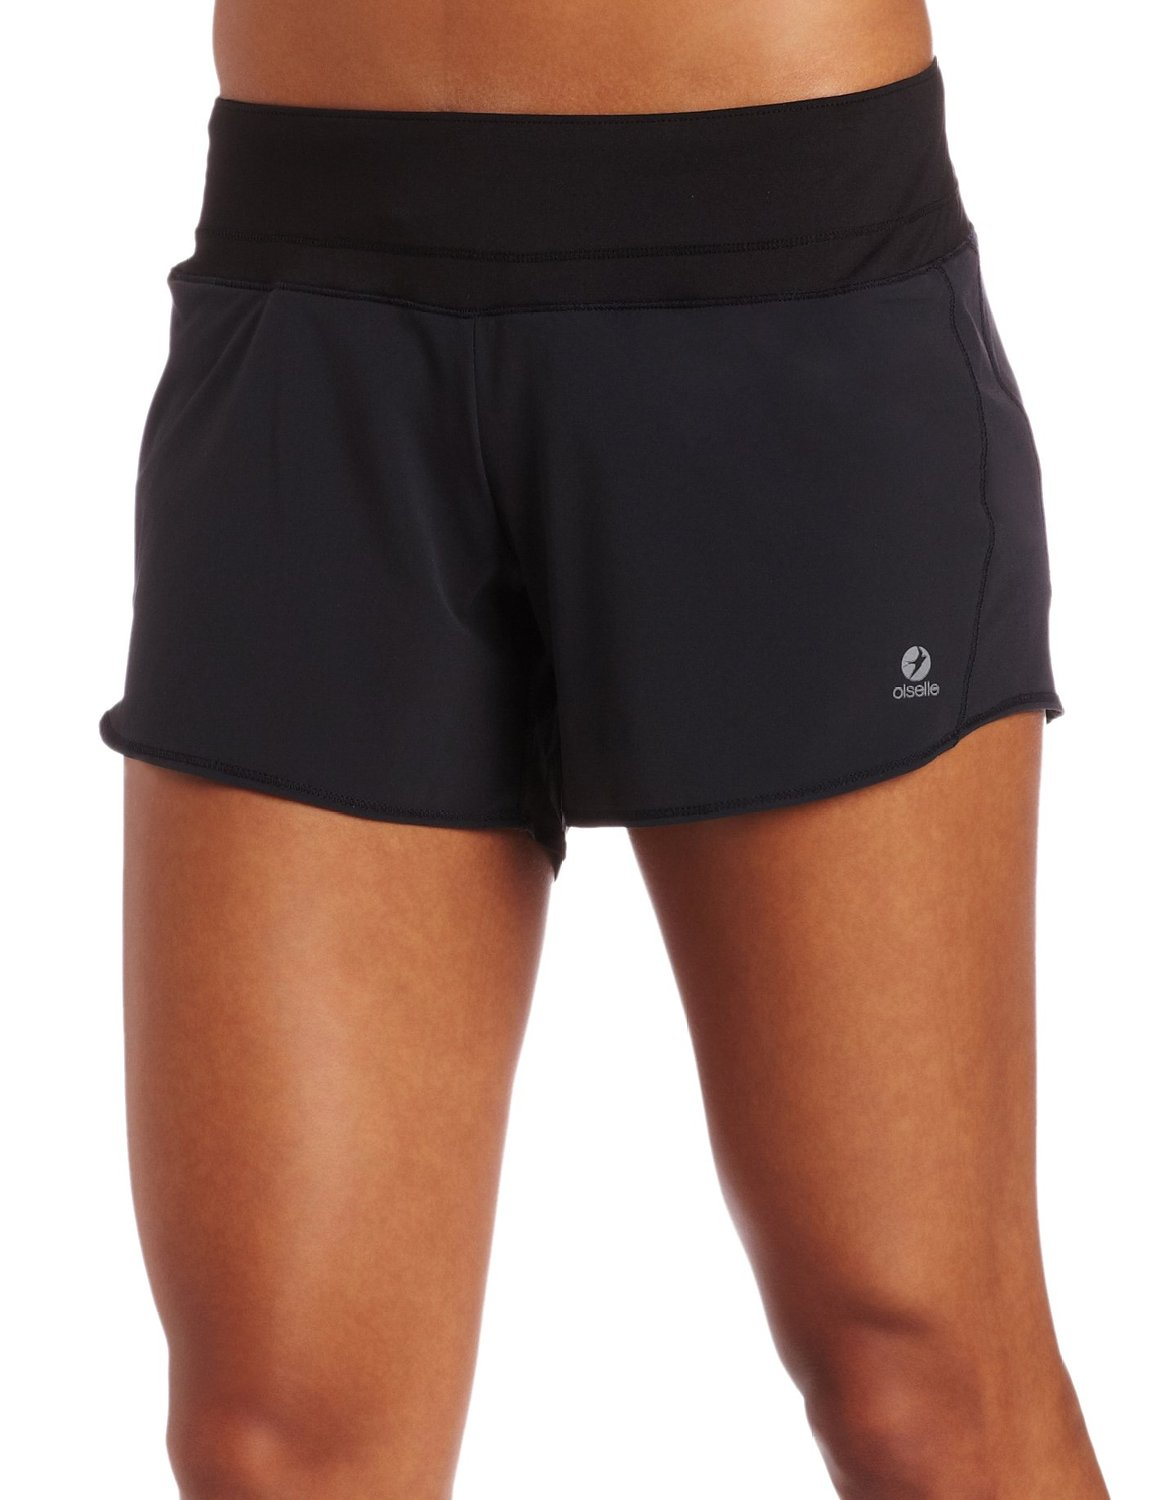 Find great deals on eBay for sports shorts women. Shop with confidence.